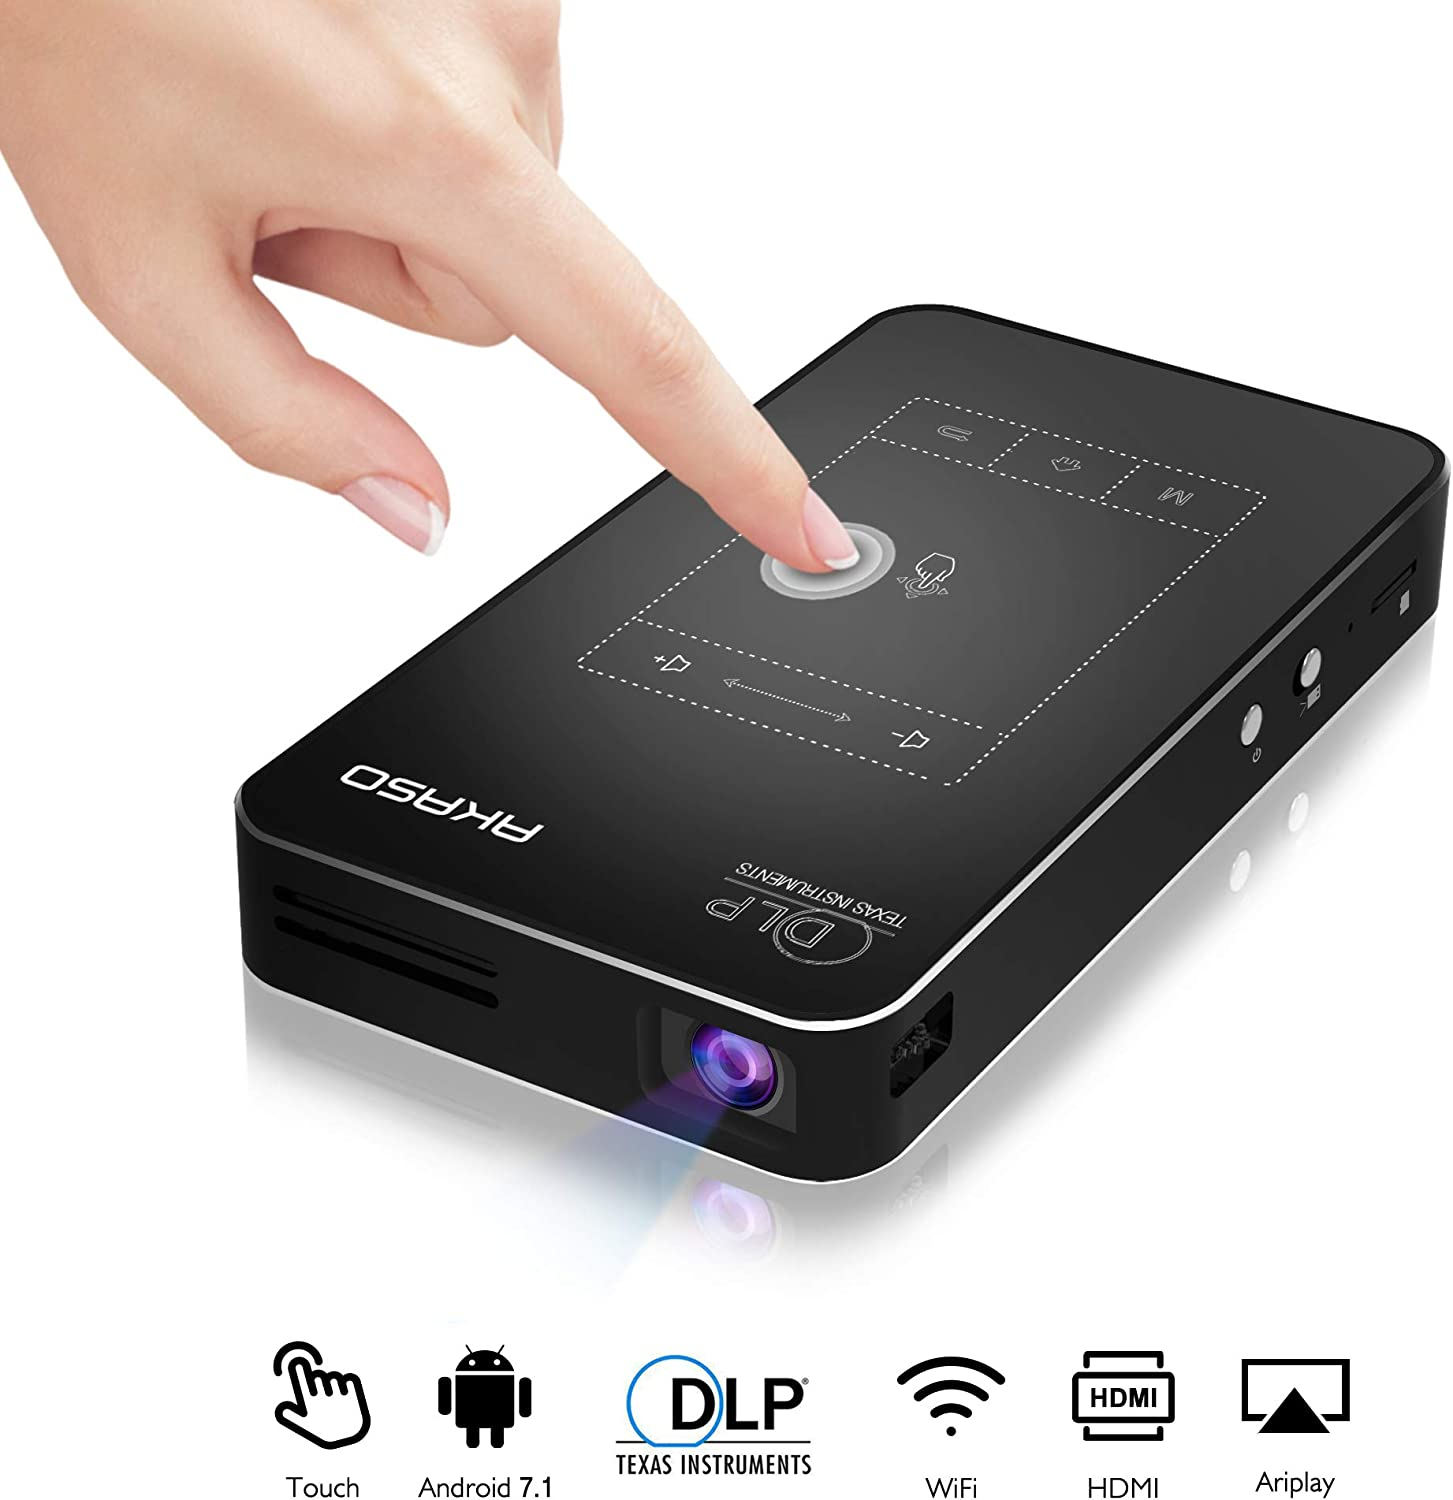 AKASO Mini Projector, WT50 DLP Portable Pocket Projector with WiFi, Android 7.1, Wireless and Wired Screen Sharing, Trackpad Design, 1080P Video Play, ...